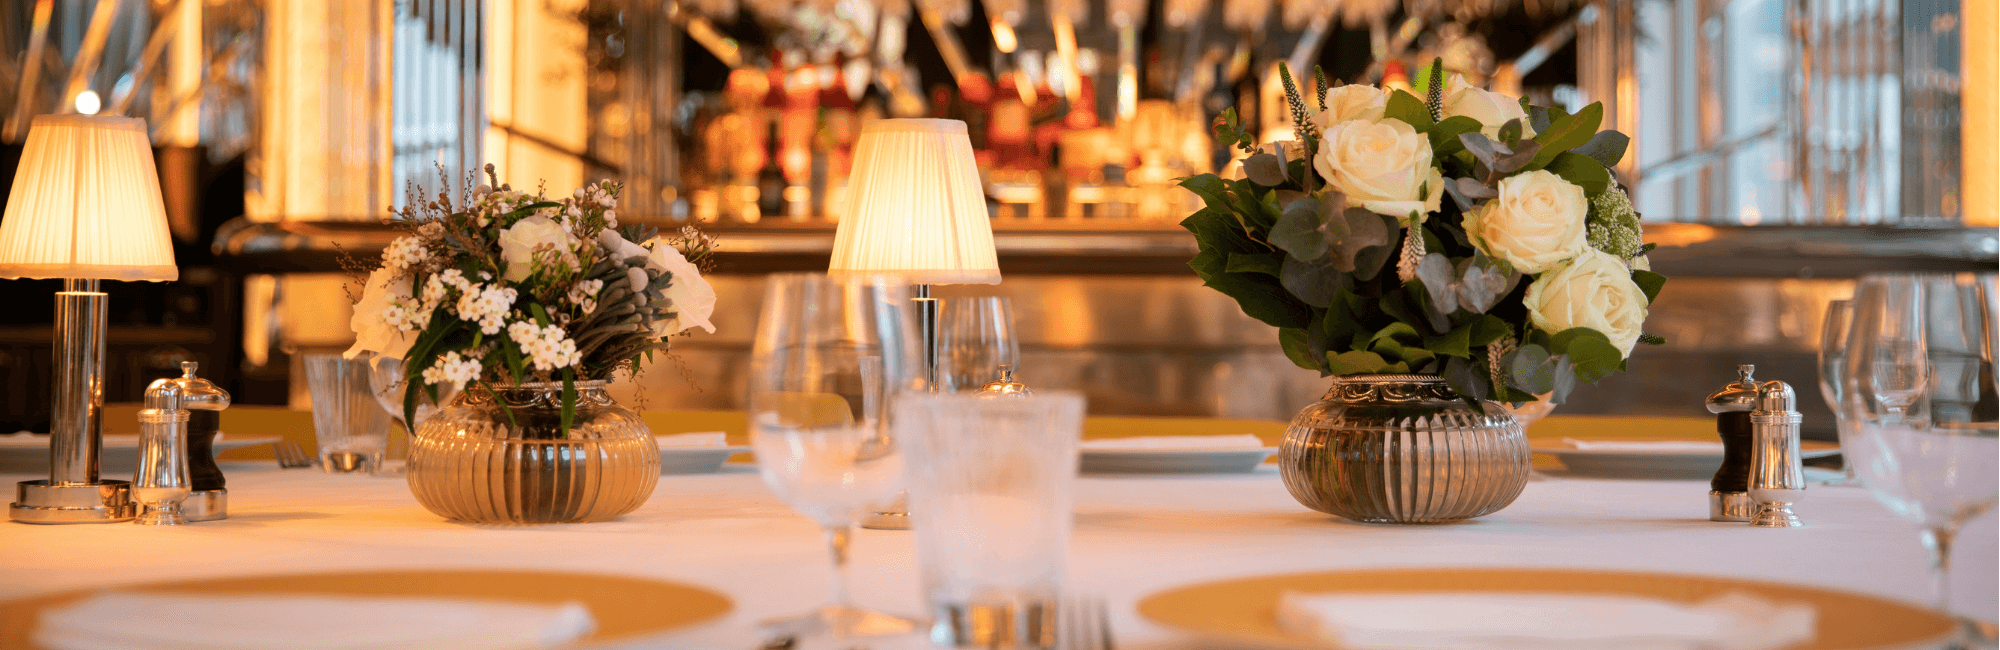 Private Dining in Central London at Brasserie of Light